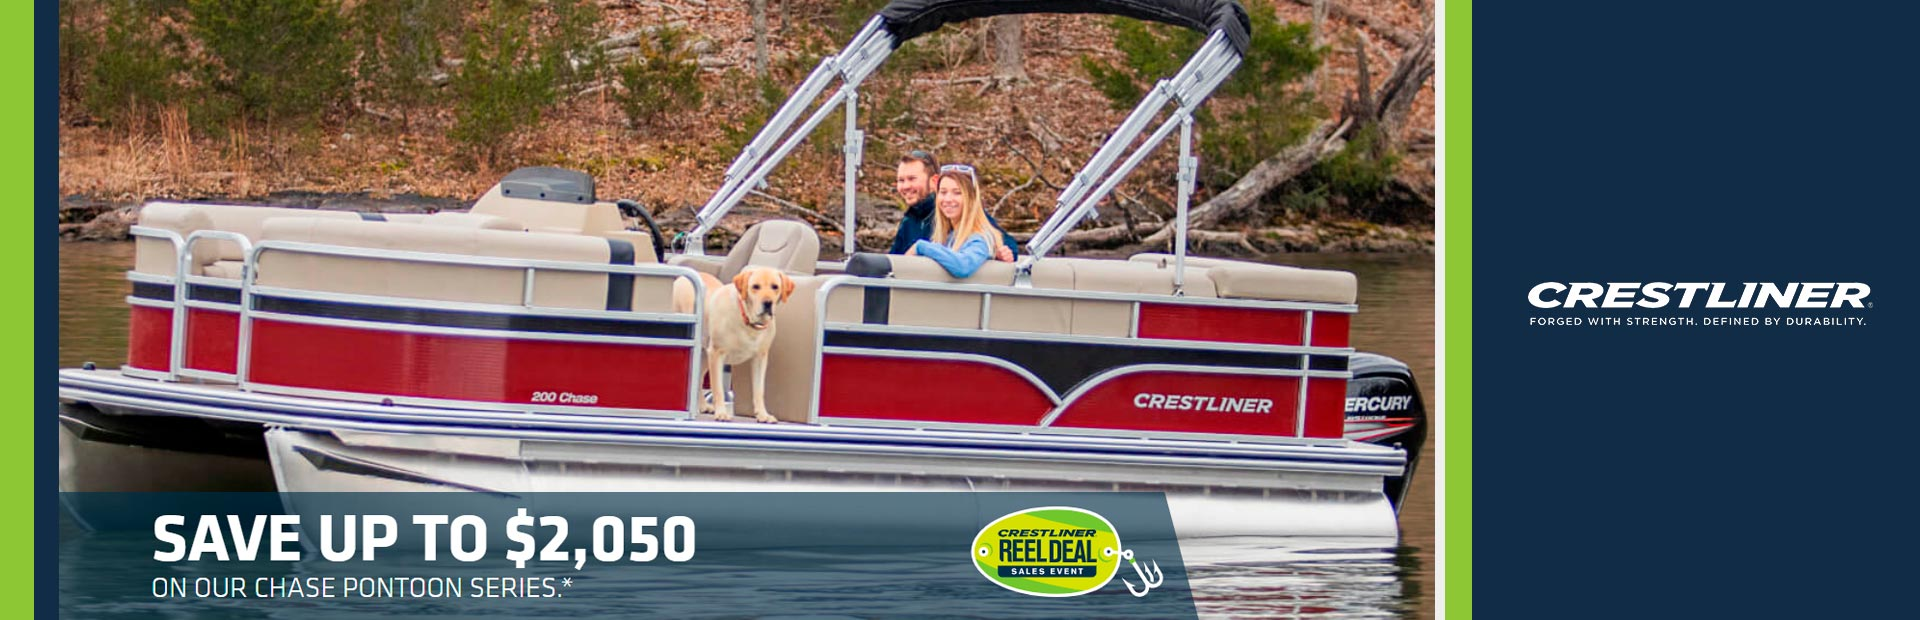 Crestliner: Save Big on Brand New Chase Pontoons